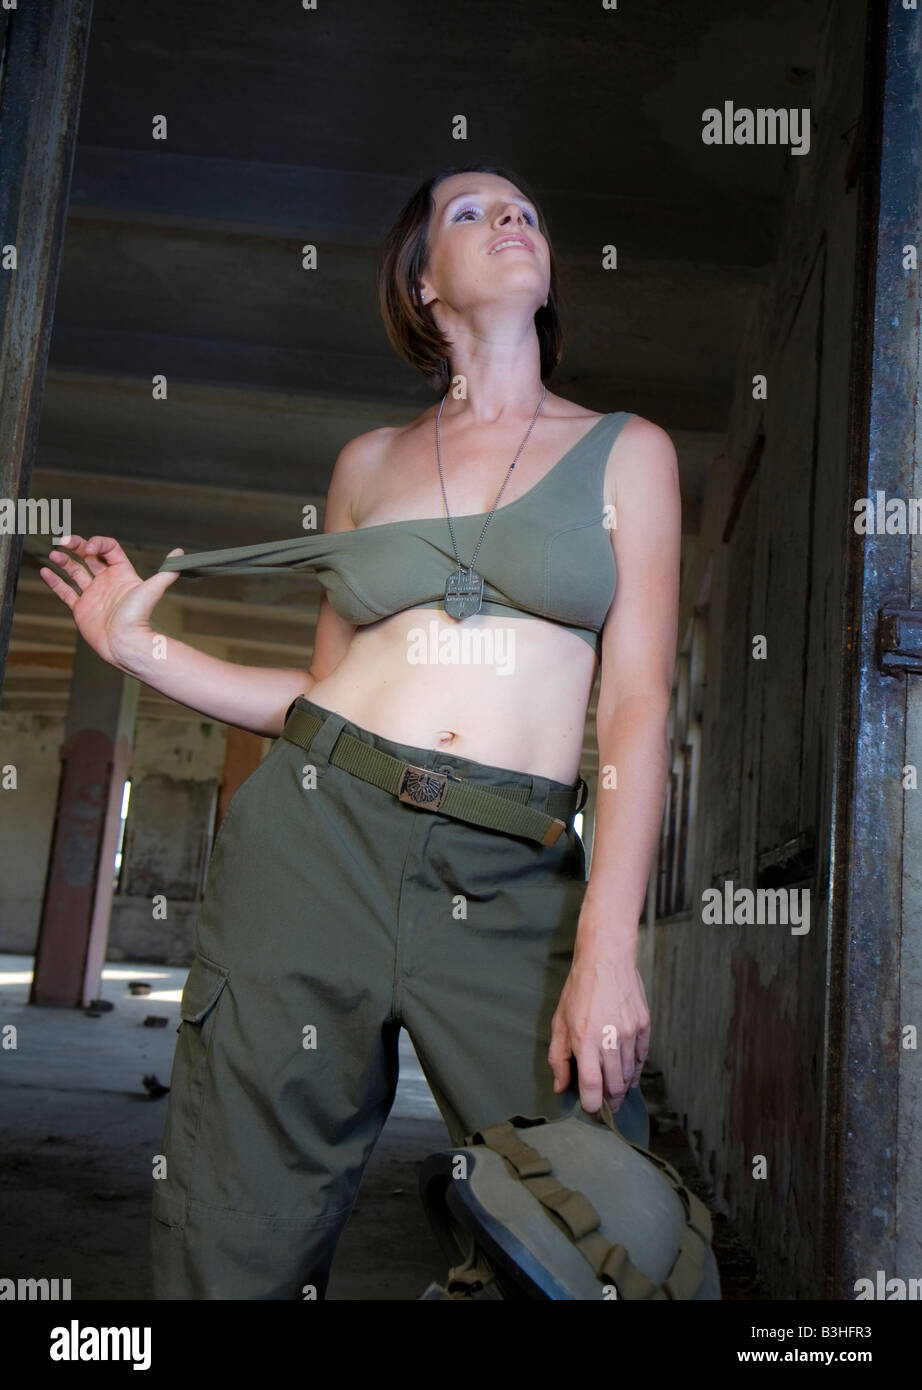 young woman posing in army uniform - Stock Image